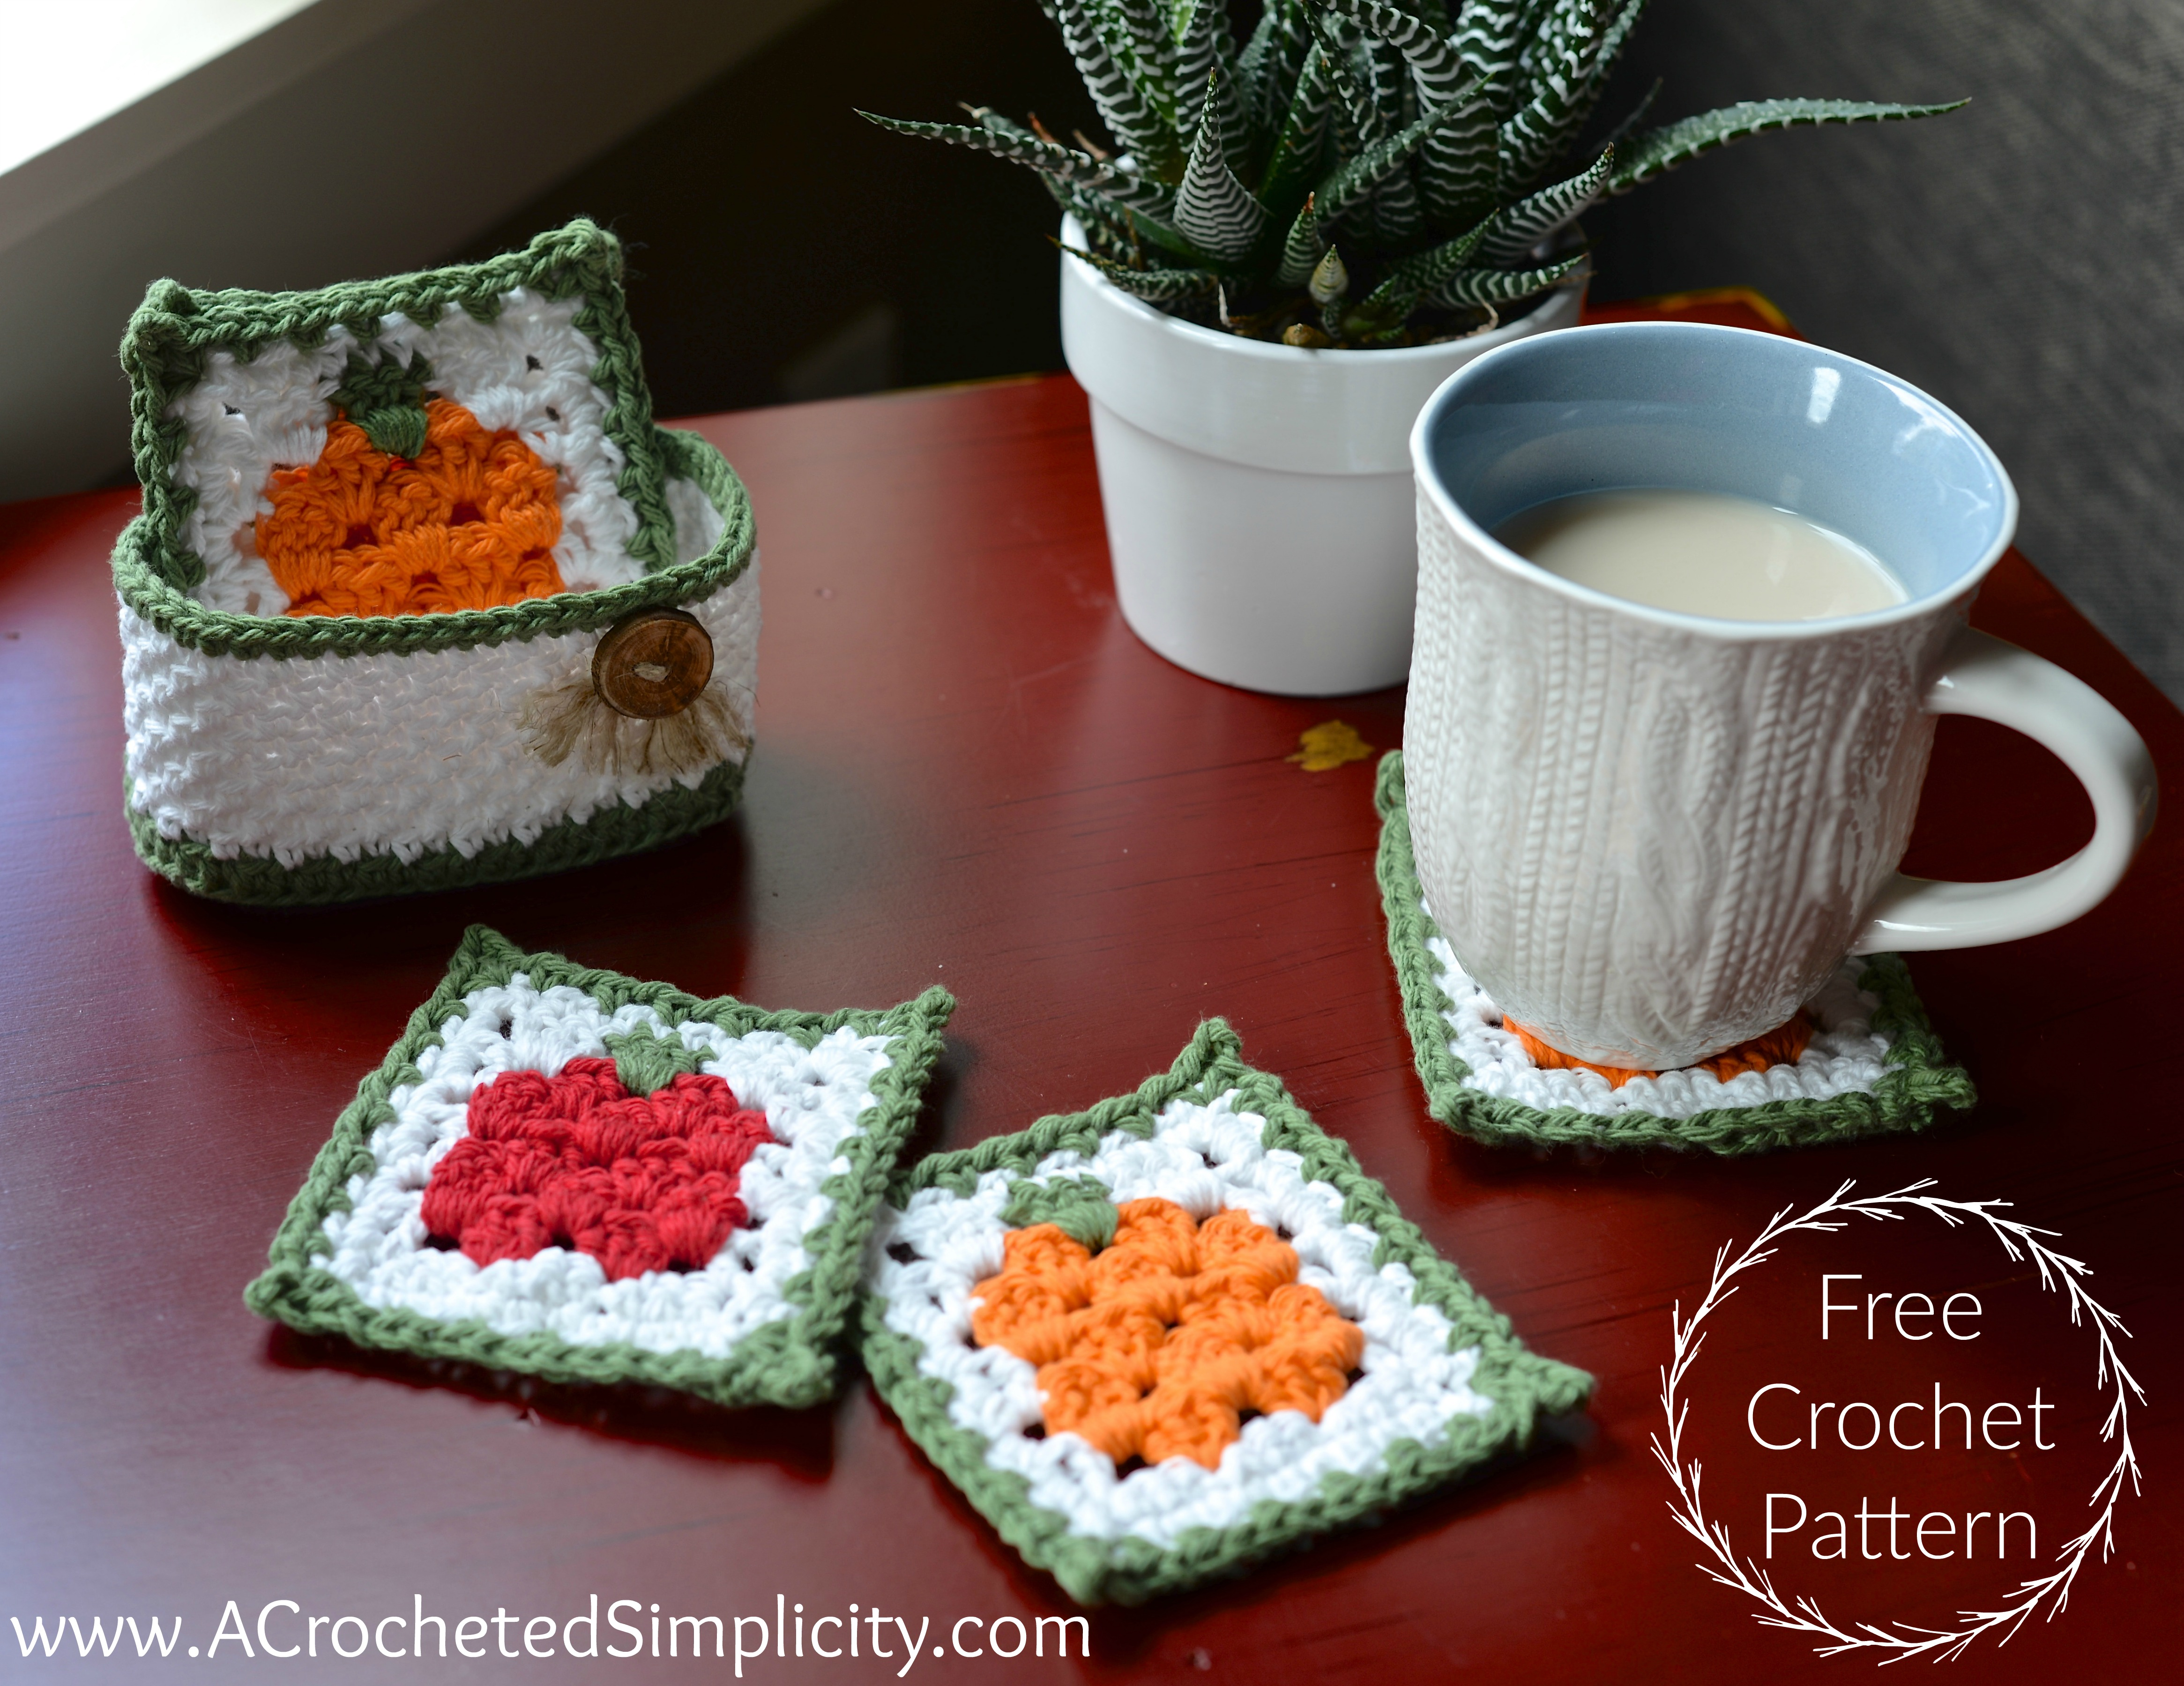 Basket Patterns Archives - A Crocheted Simplicity